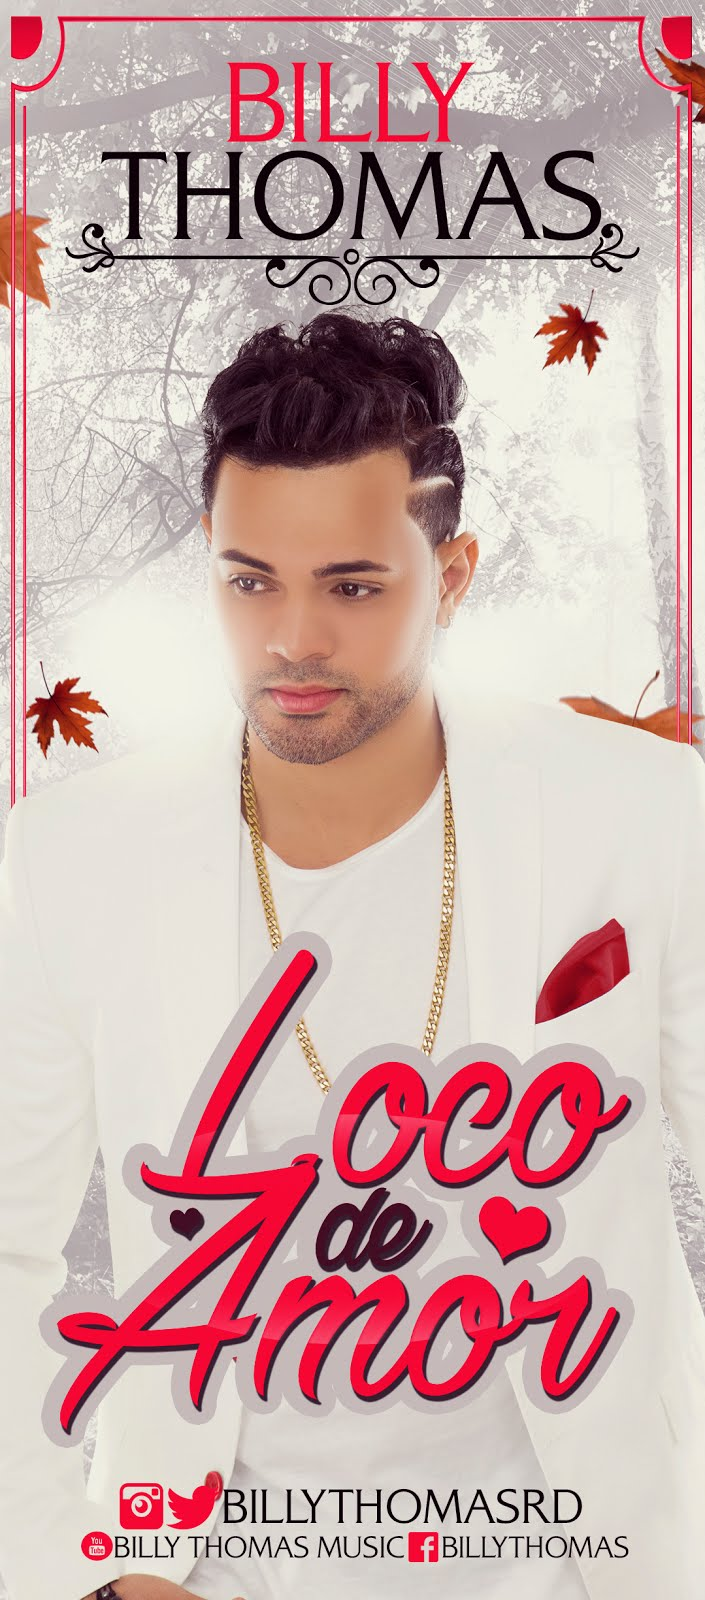 "BILLY THOMAS NUEVO HIT ""LOCO DE AMOR"